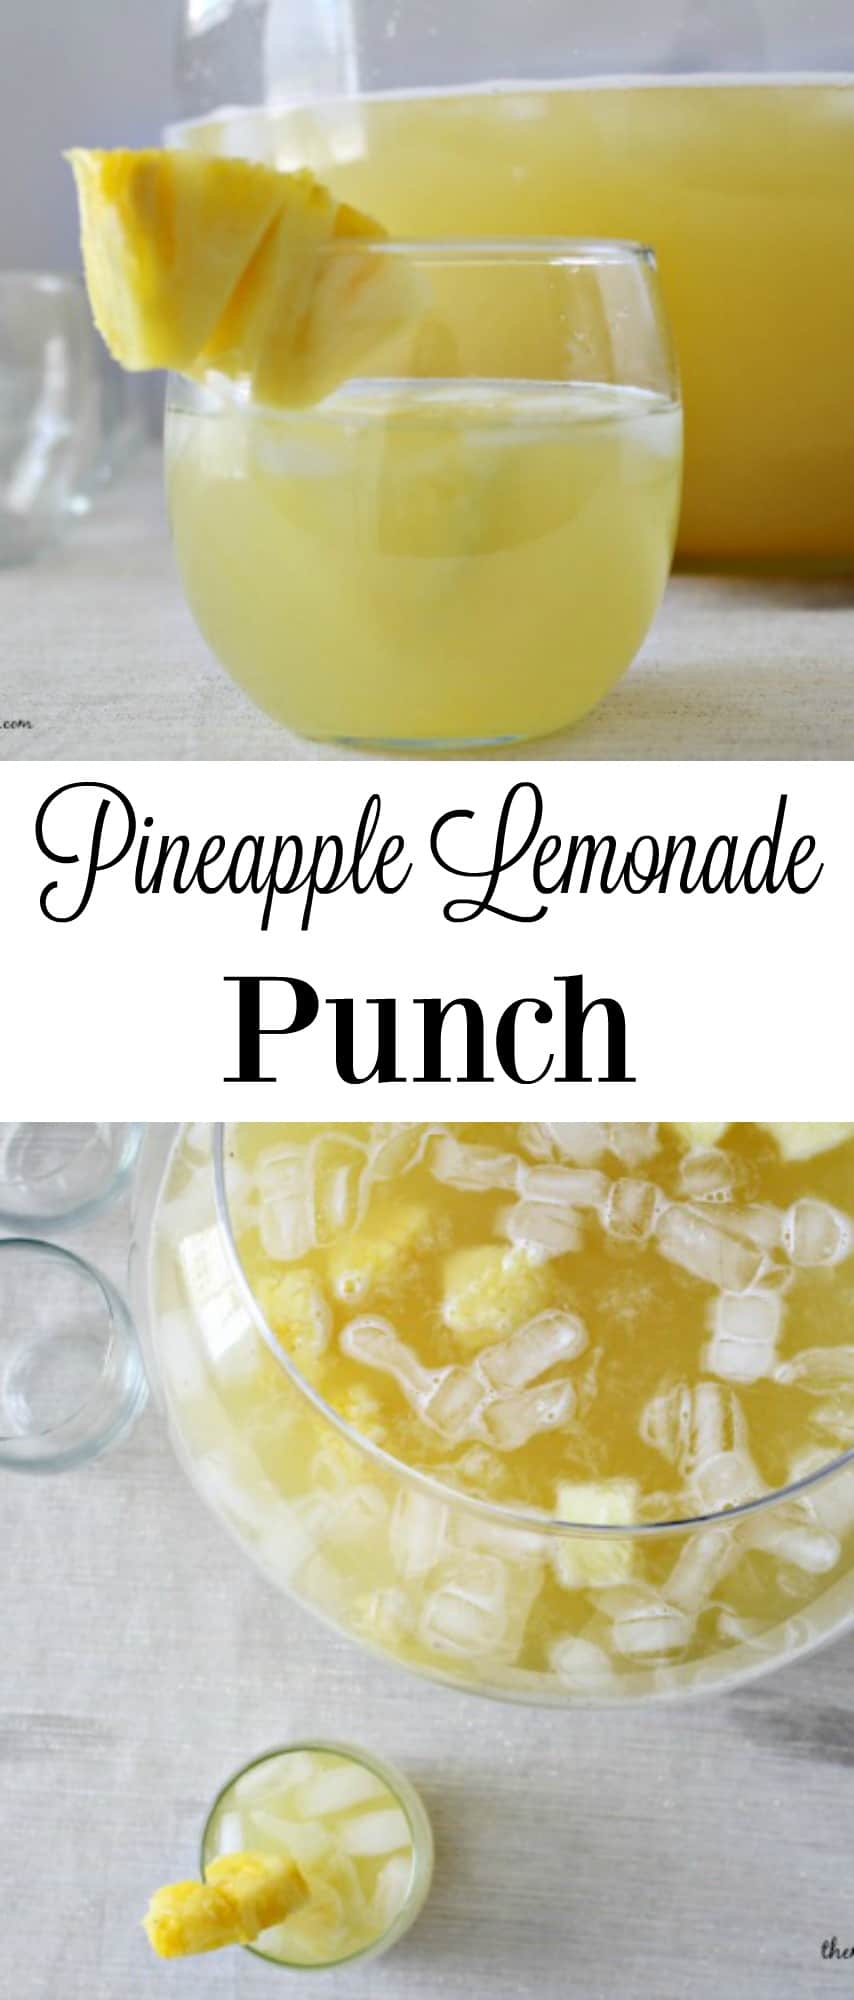 Pineapple Lemonade Punch #beverage #lemonade #themelrosefamily